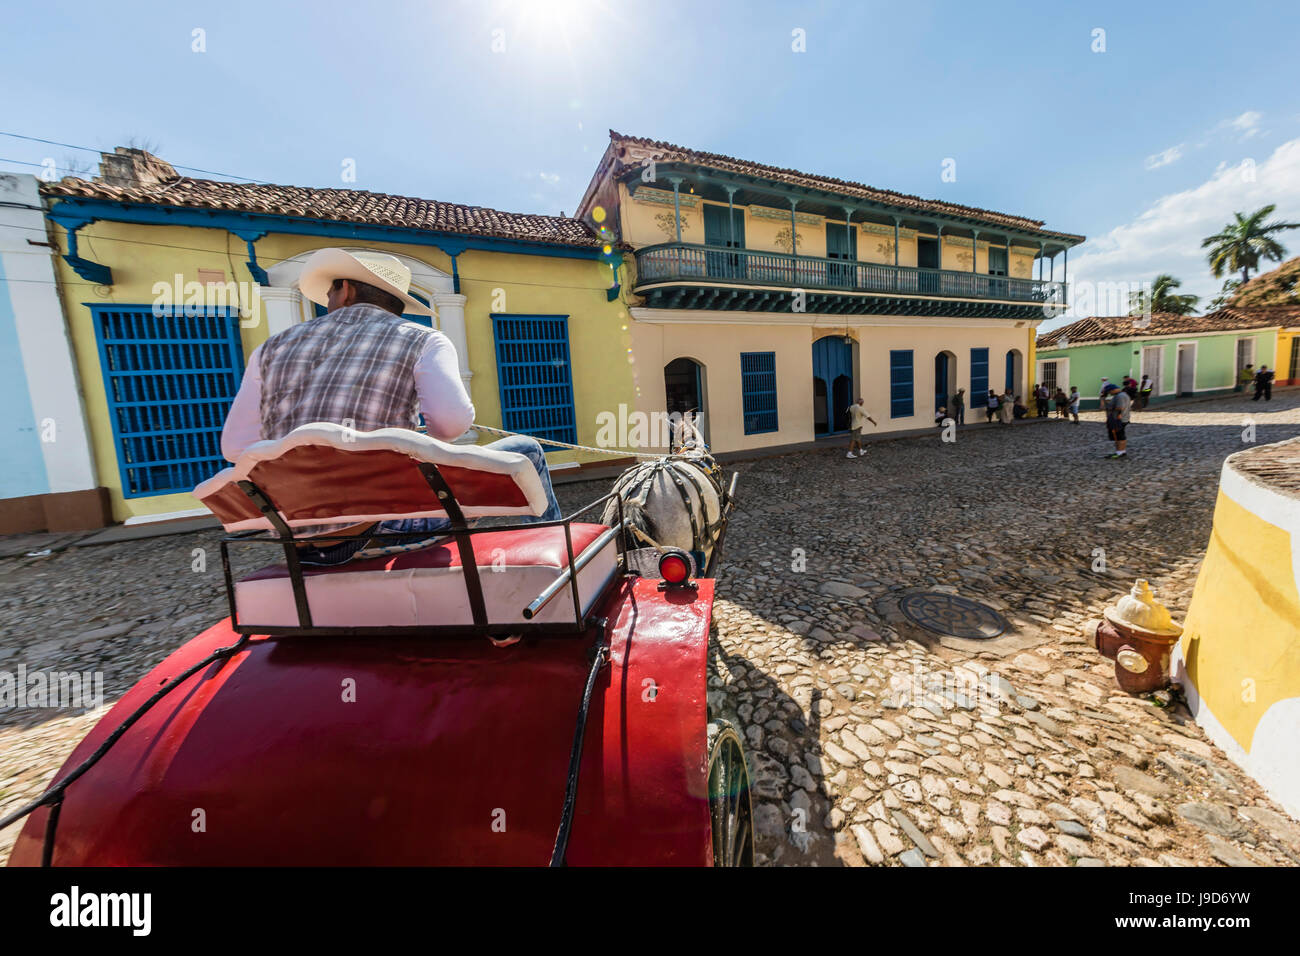 A horse-drawn cart known locally as a coche in Plaza Mayor, Trinidad, UNESCO World Heritage Site, Cuba, West Indies, - Stock Image